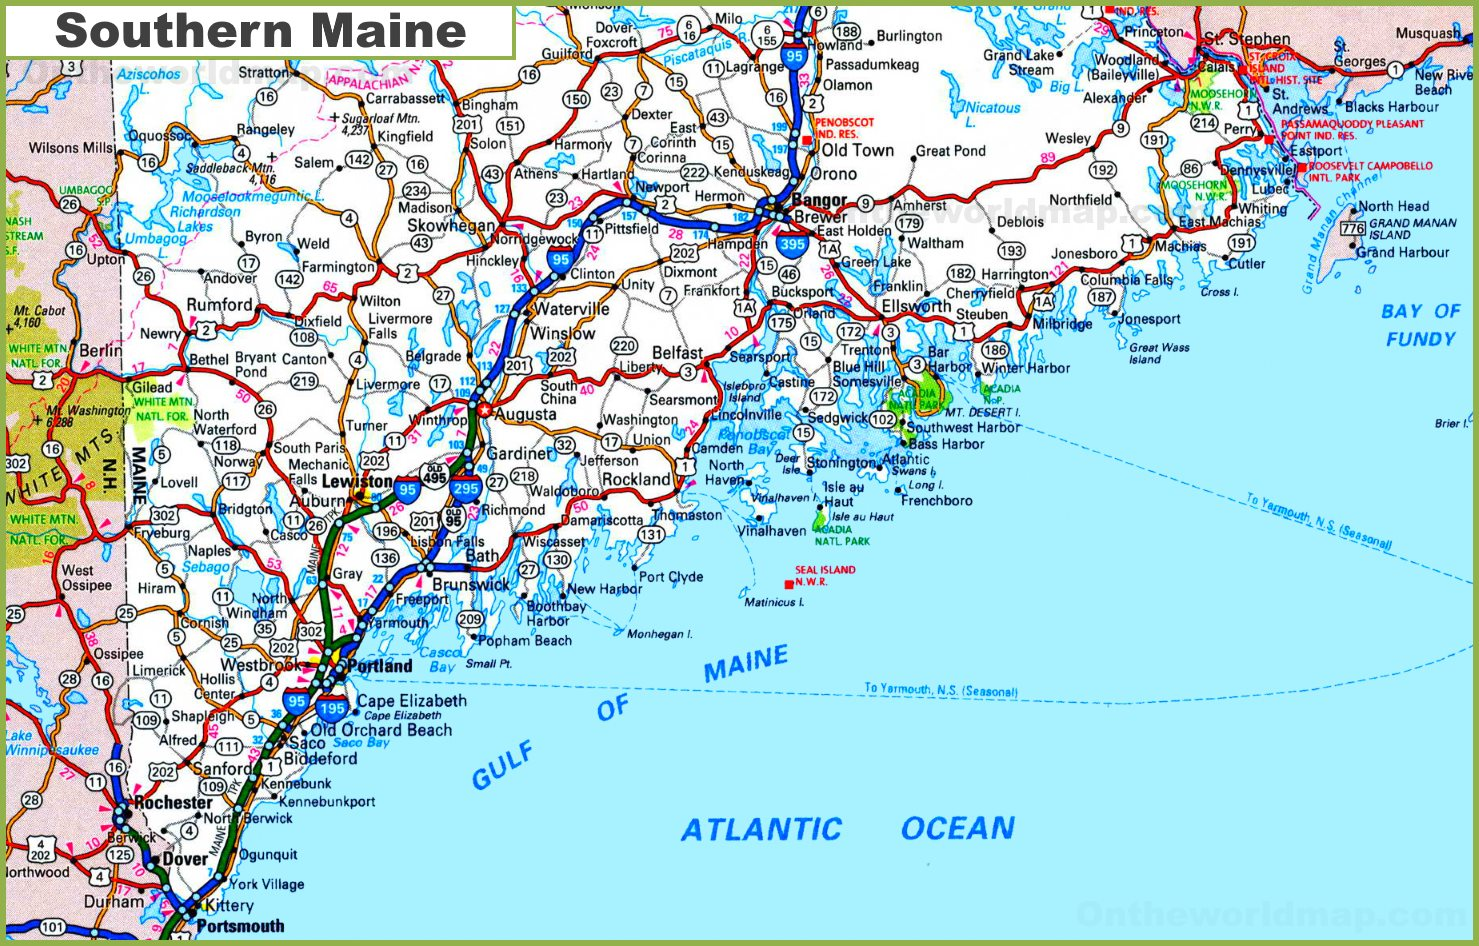 Map Of Southern Maine Map of Southern Maine